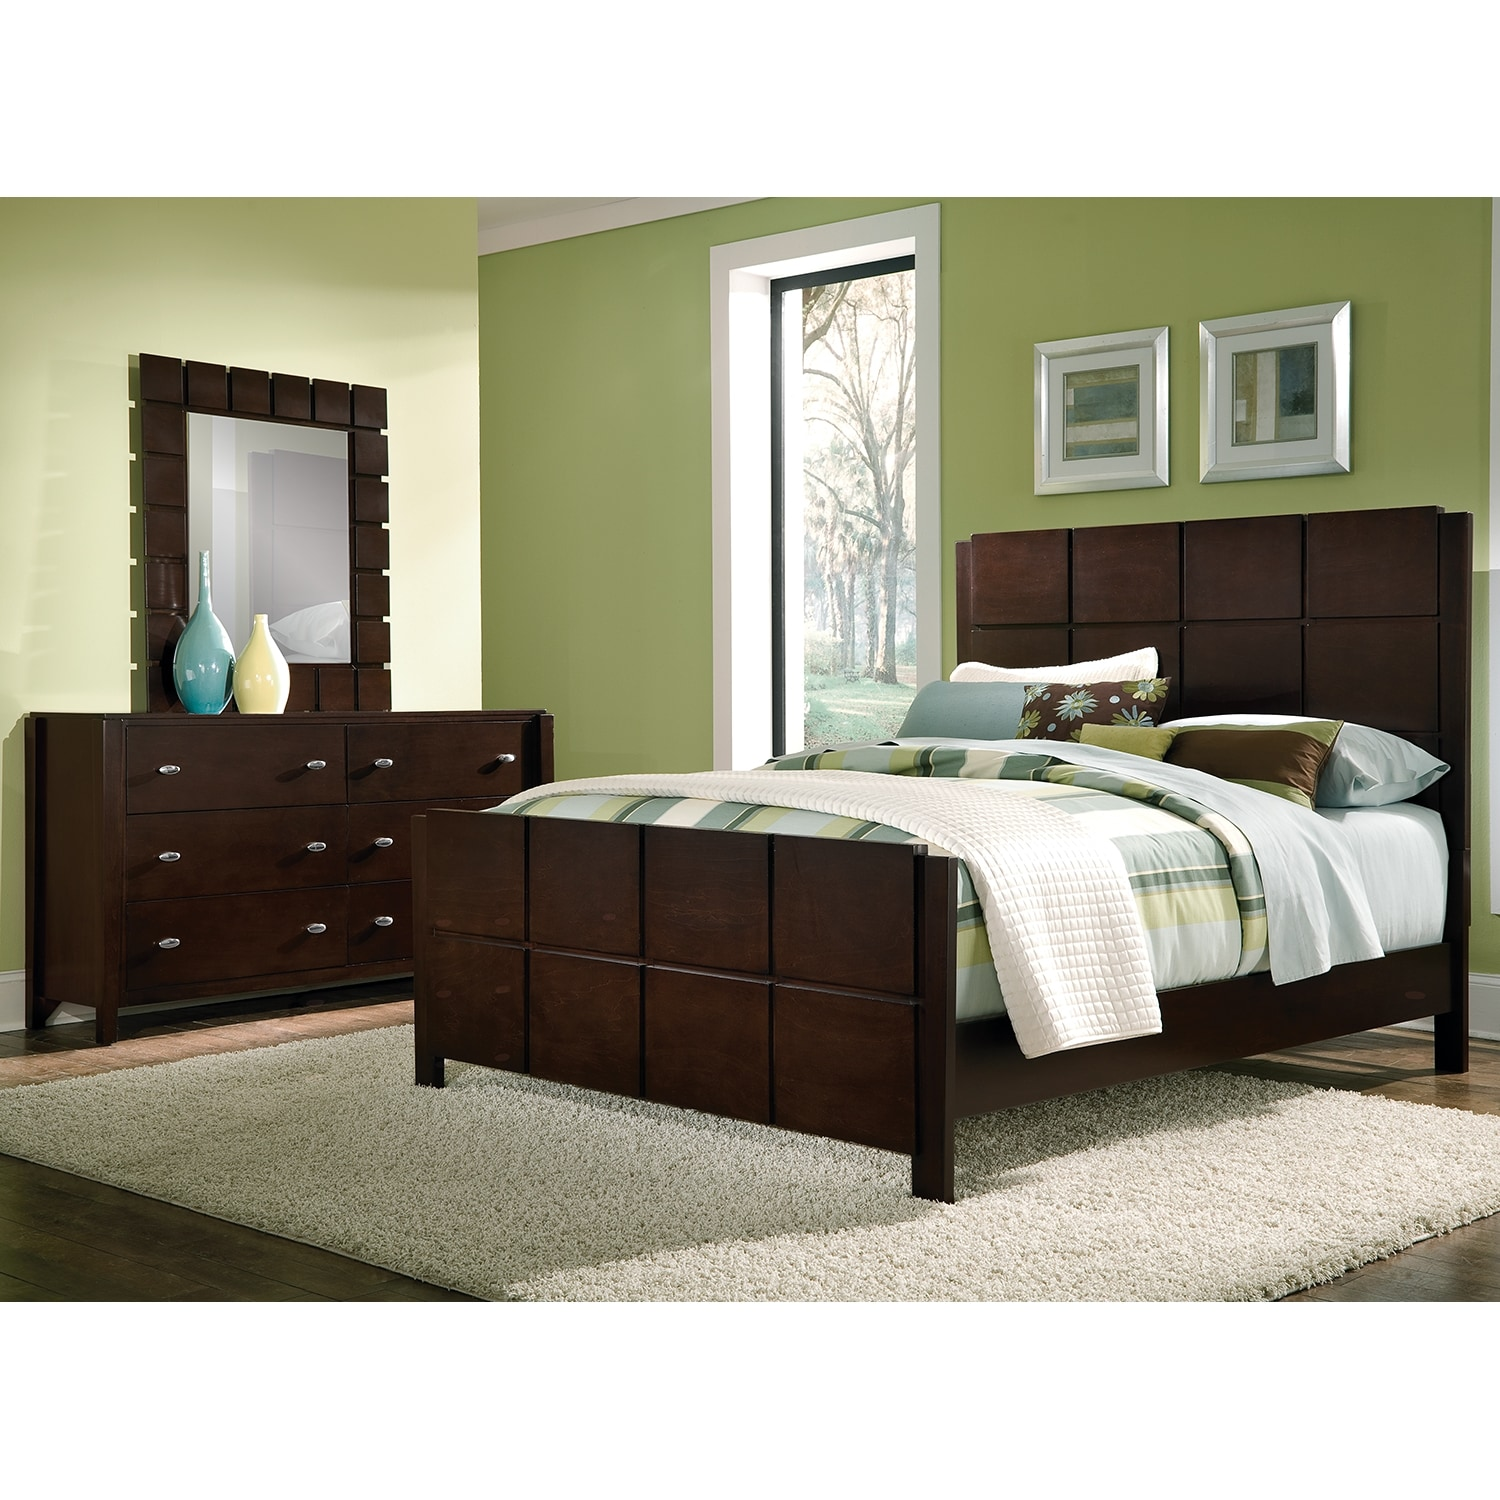 Mosaic 5 piece king bedroom set dark brown american for American bedrooms